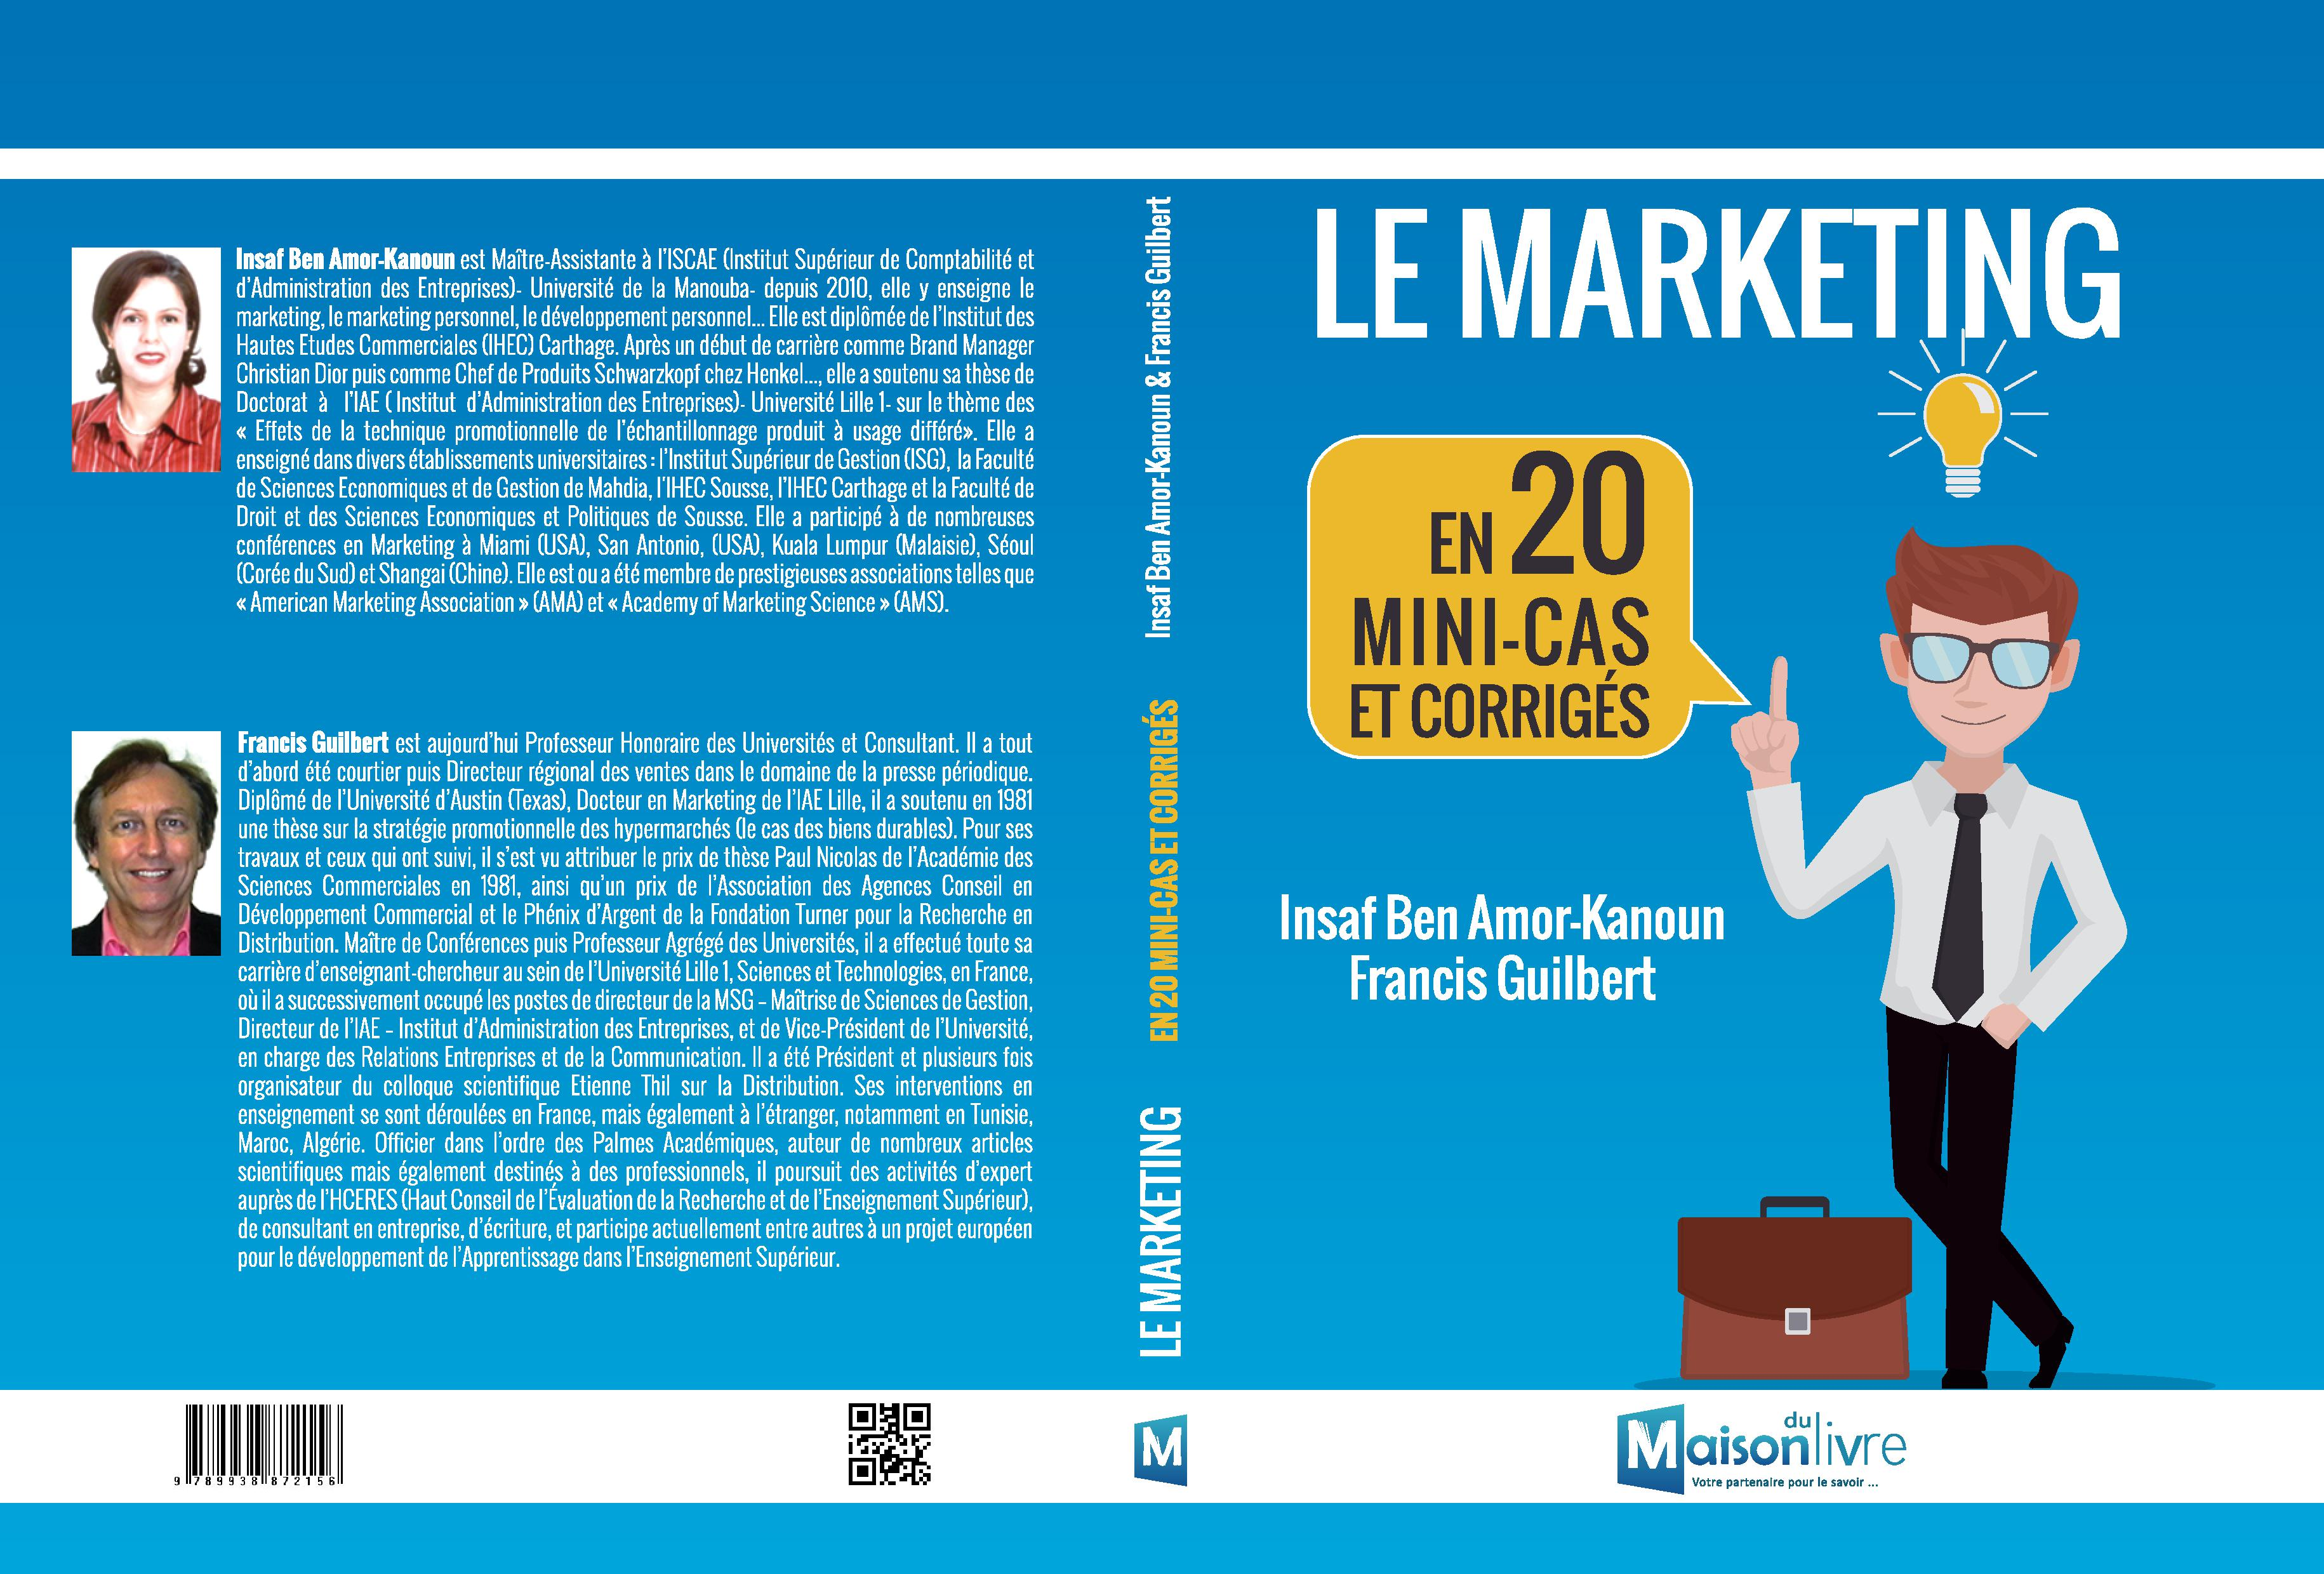 LE MARKETING en 20 mini-cas et corrigées